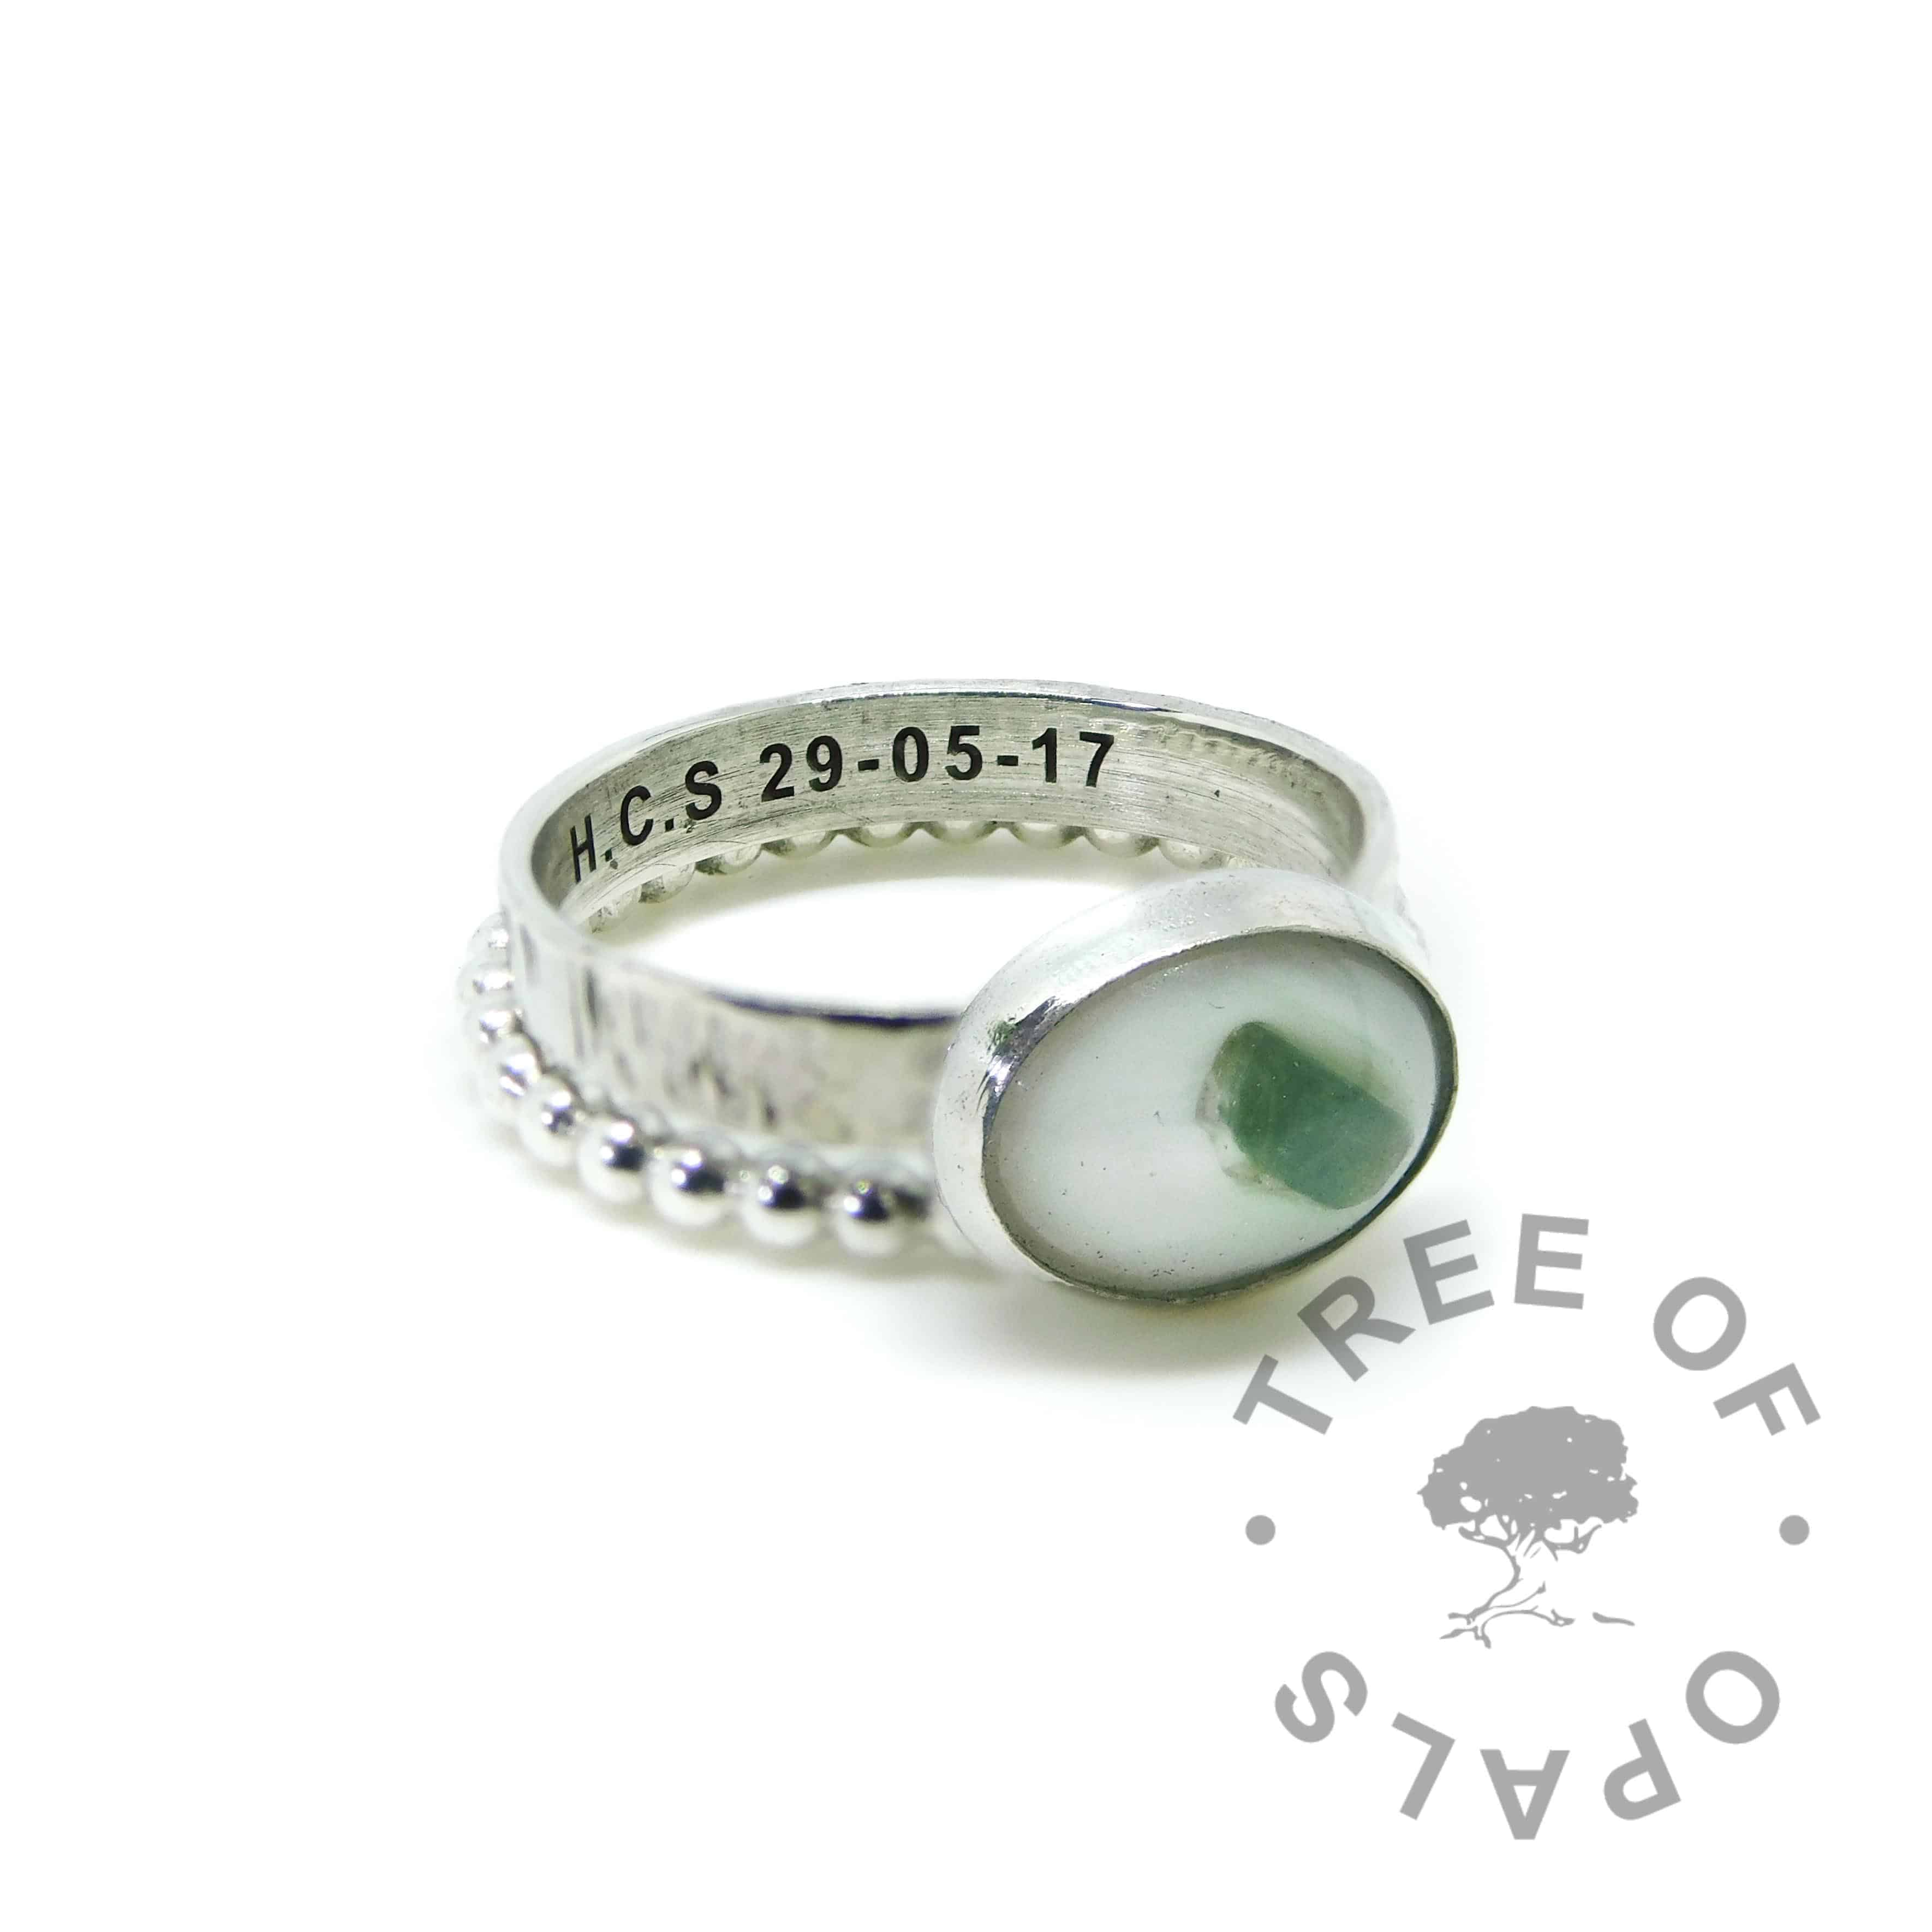 milk ring tree breastmilk and May birthstone emerald on tree bark ring (special request) engraved with DOB shown with bubble wire stacking band. Handmade solid sterling silver keepsake jewellery by Tree of Opals